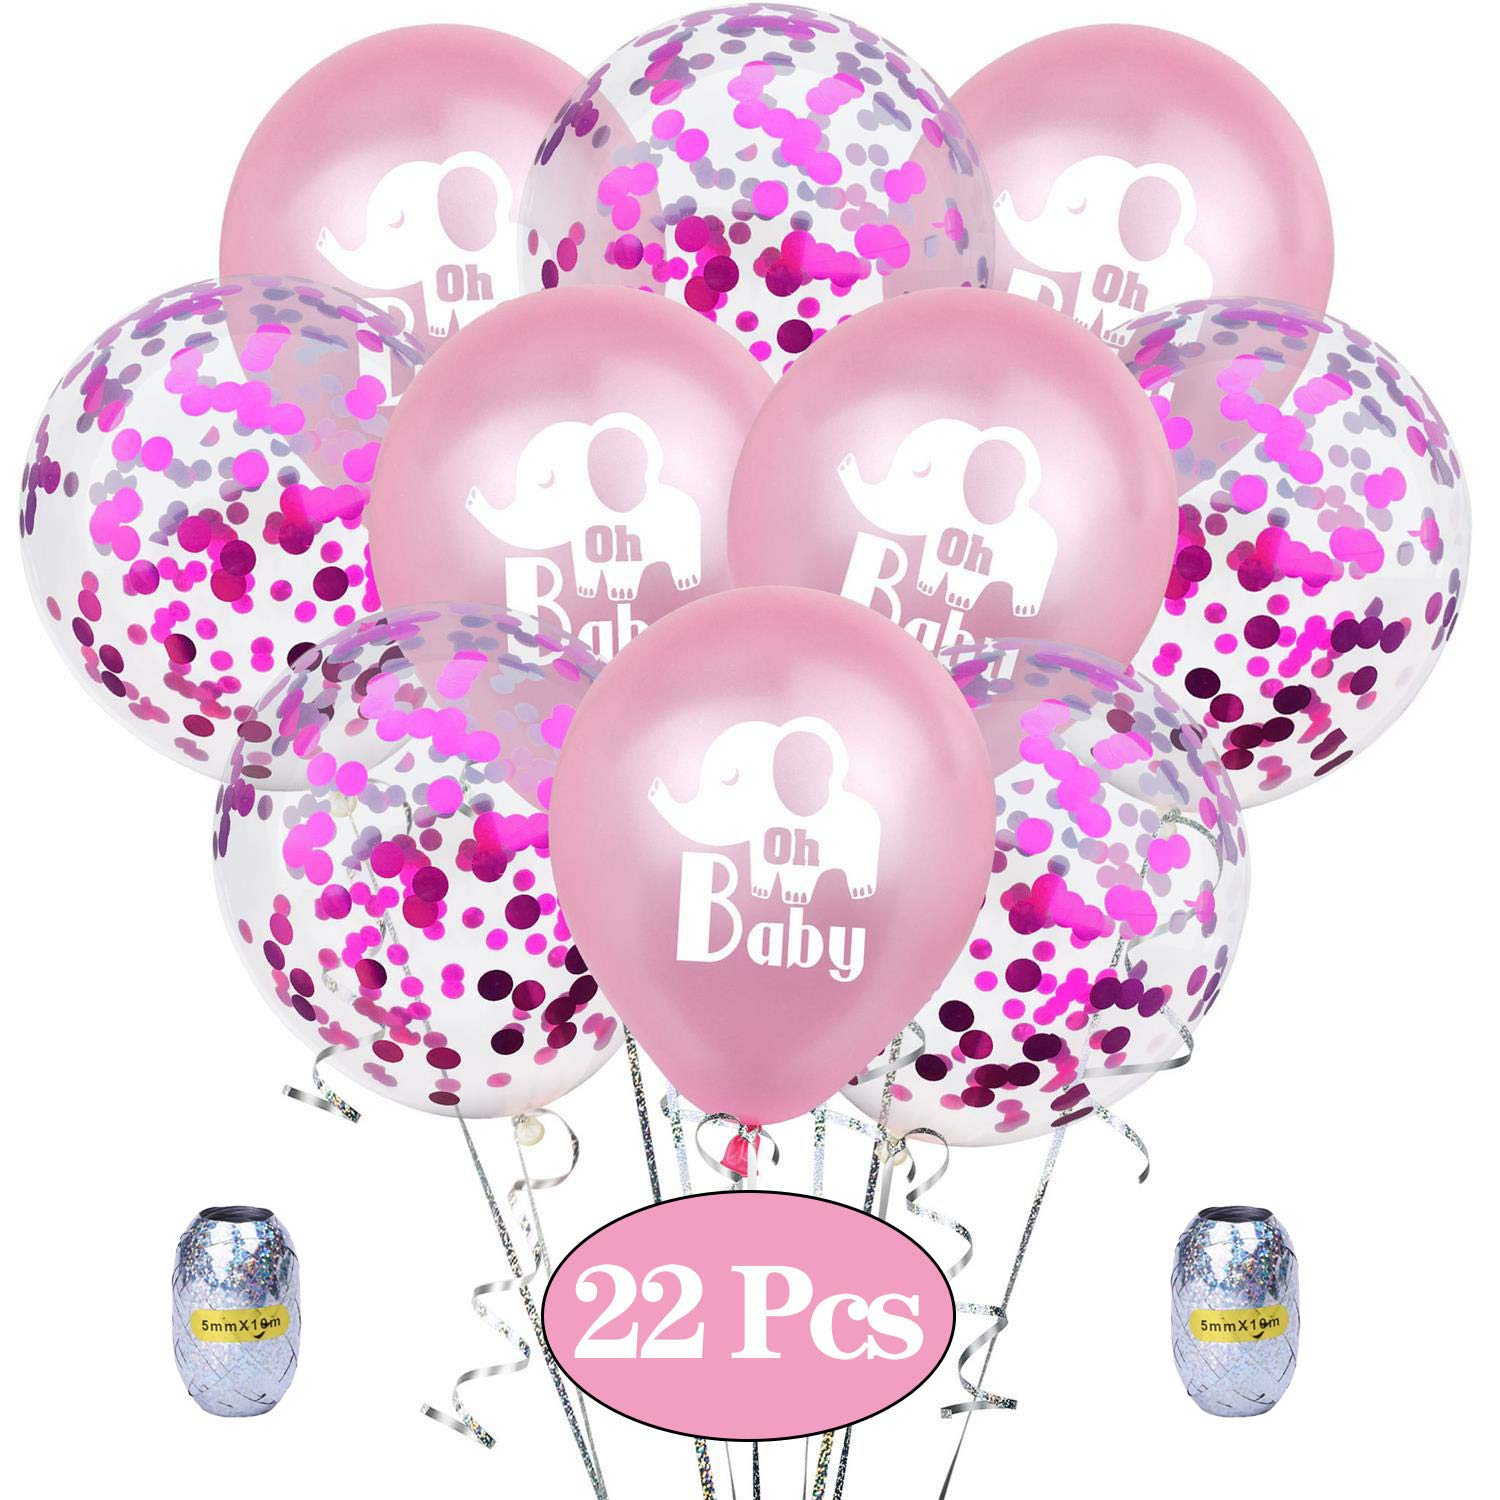 10 Pack 12 Inch Elephant Latex Balloons and 10 Pack Confetti Balloons For Elephant Theme Birthday Party Favors Pink Elephant Balloons For Girls Baby Shower//Girls Birthday Decorations